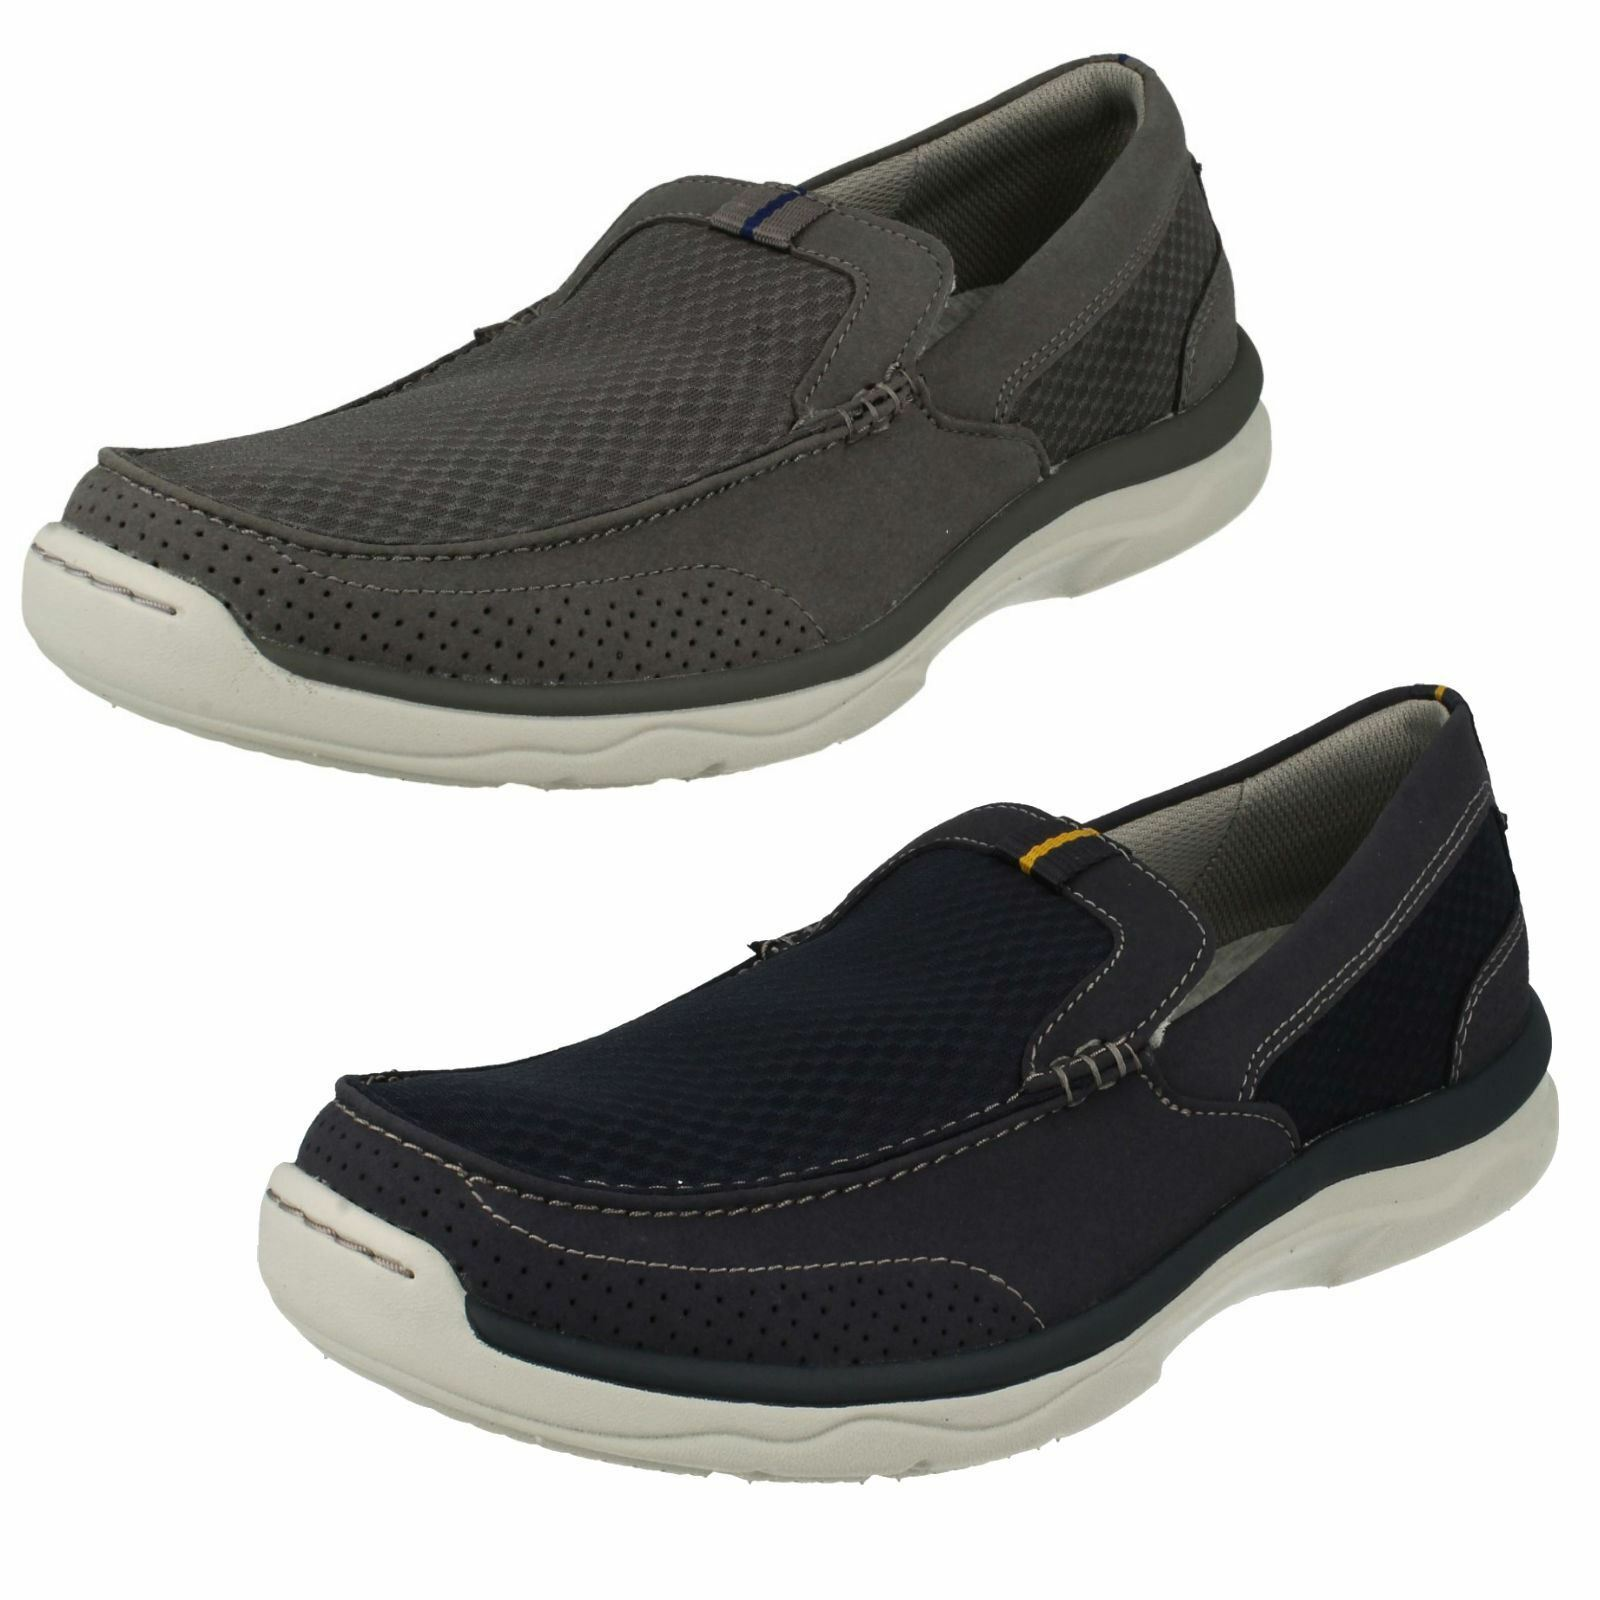 Mens Clarks Casual Slip On Textile shoes Marus Step